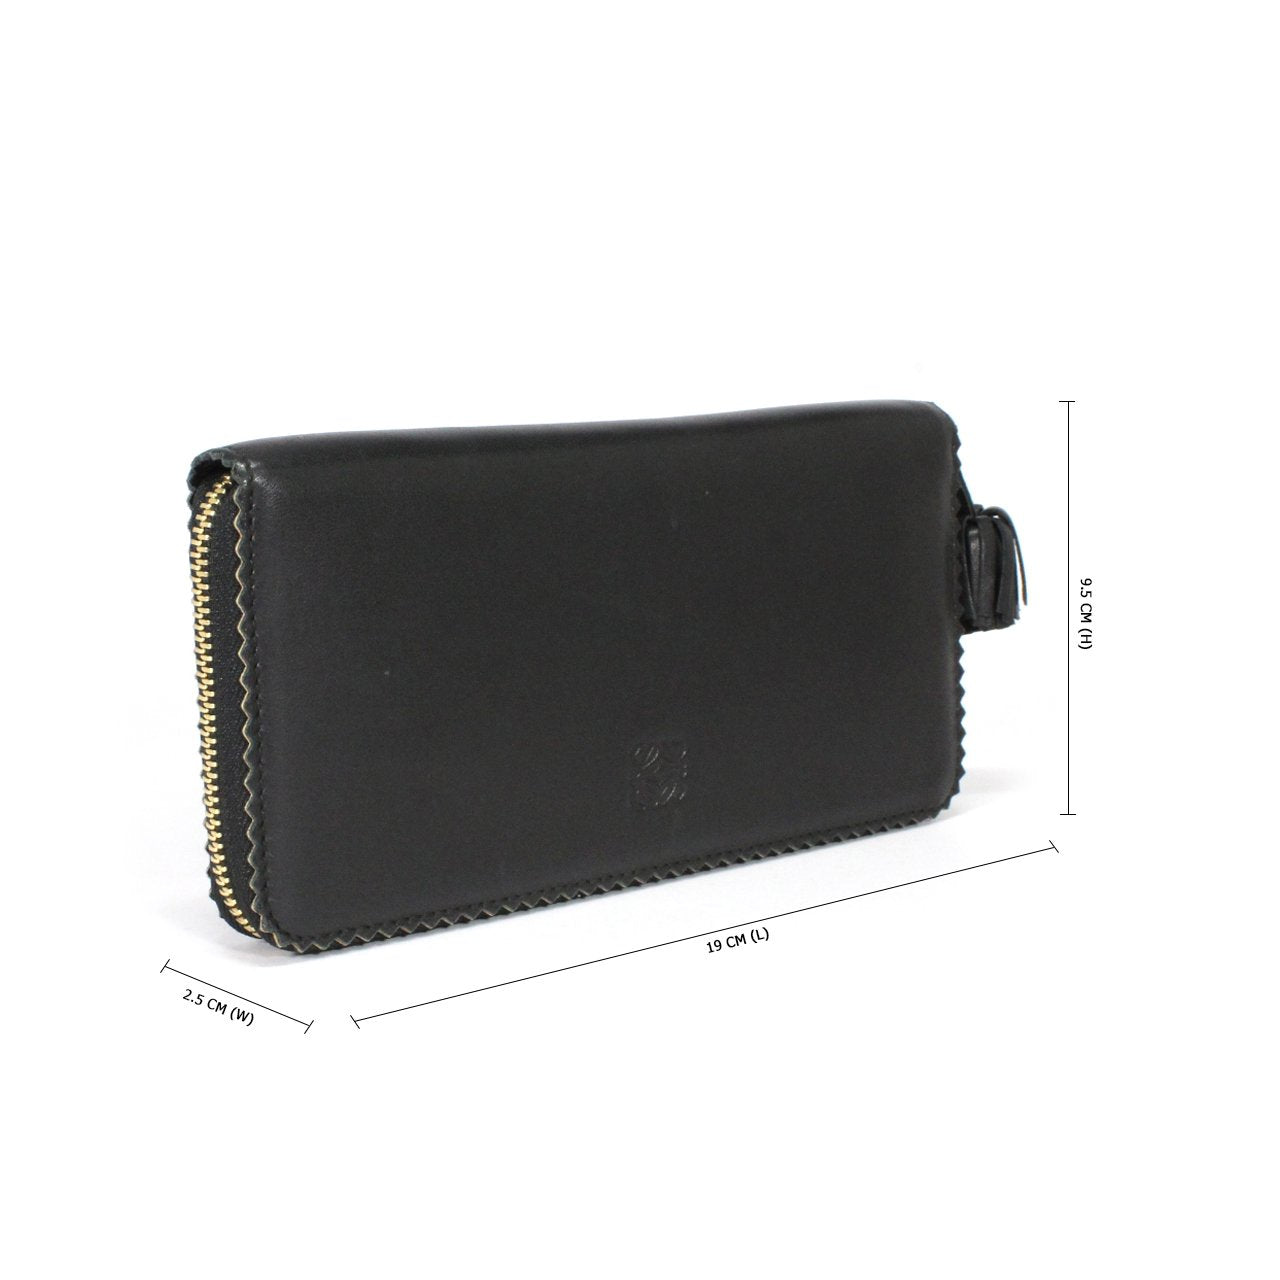 Loewe Large Black Zip Around Wallet